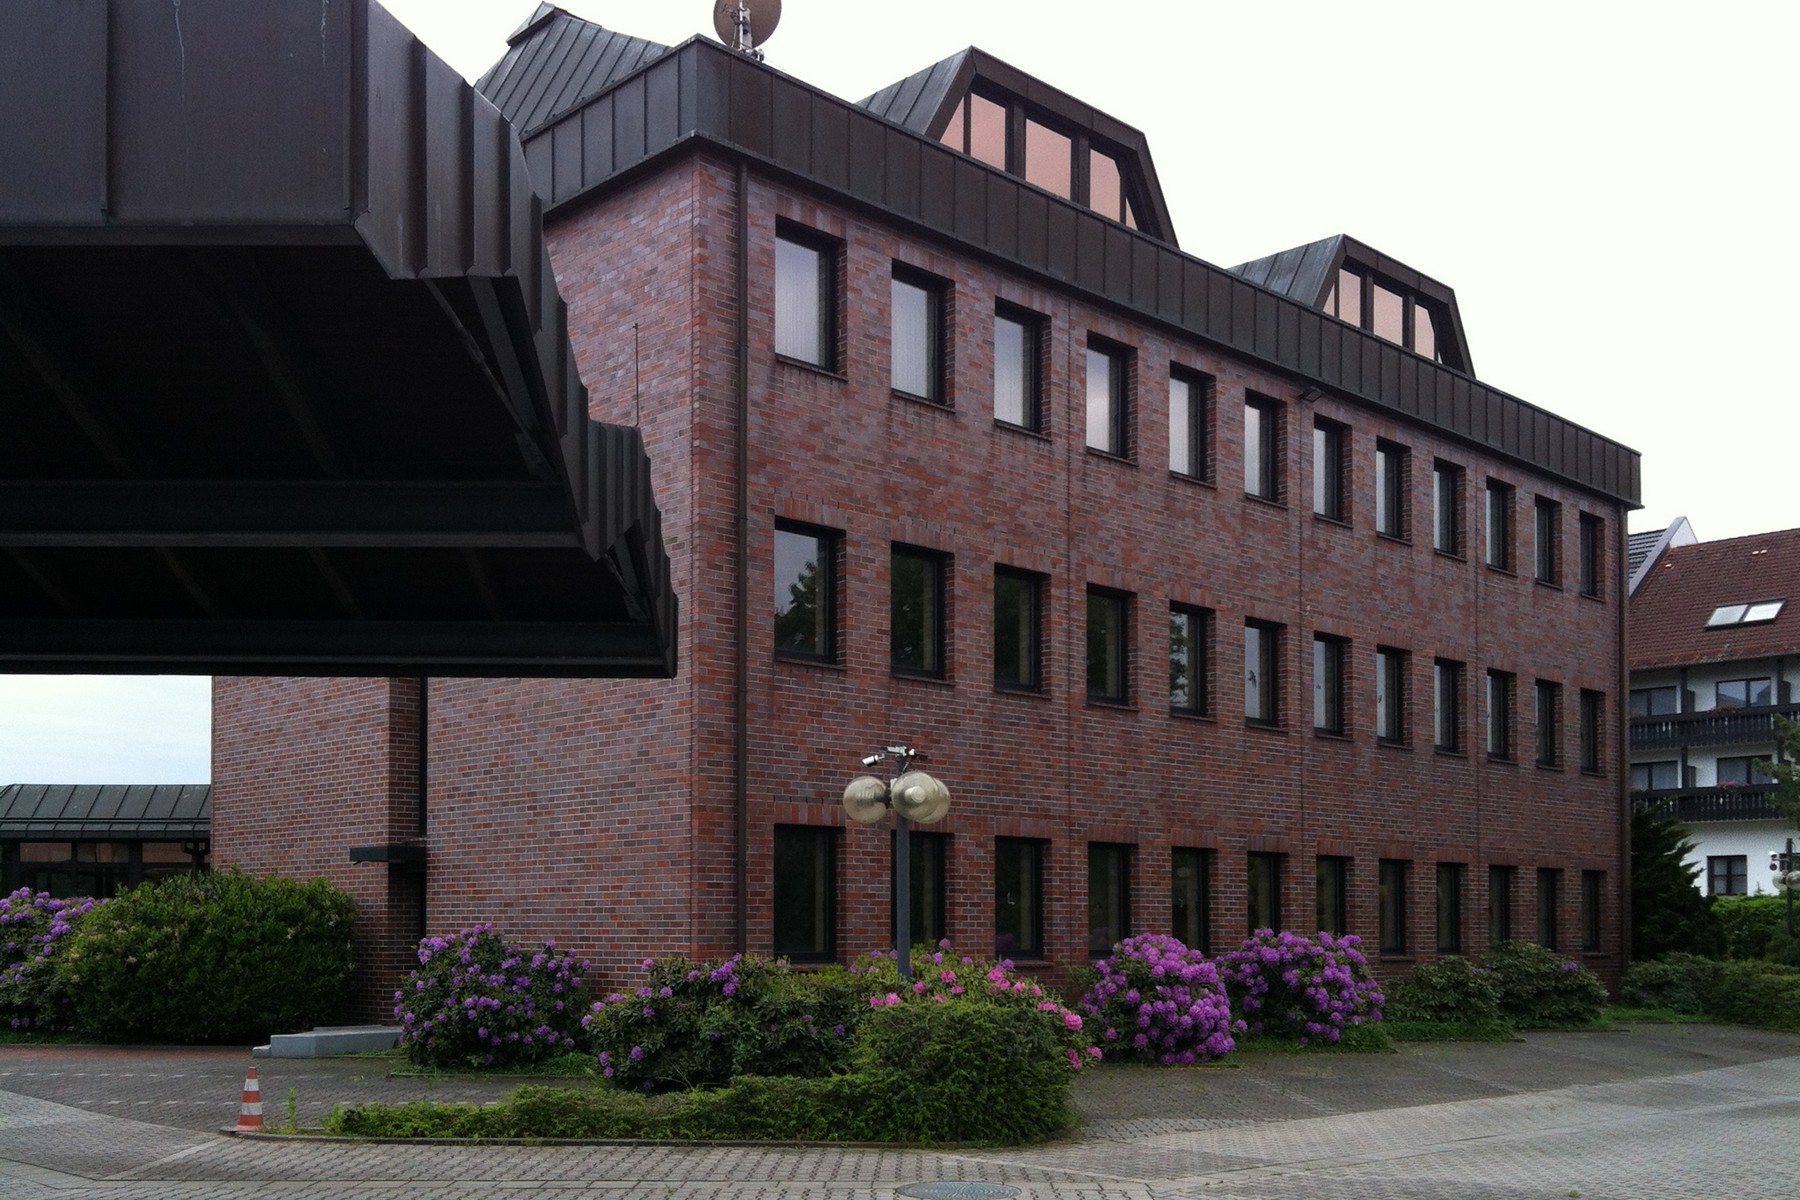 Single Family Home for Sale at Representative Office Building with Convention Rooms Frankfurt, Hessen 60325 Germany